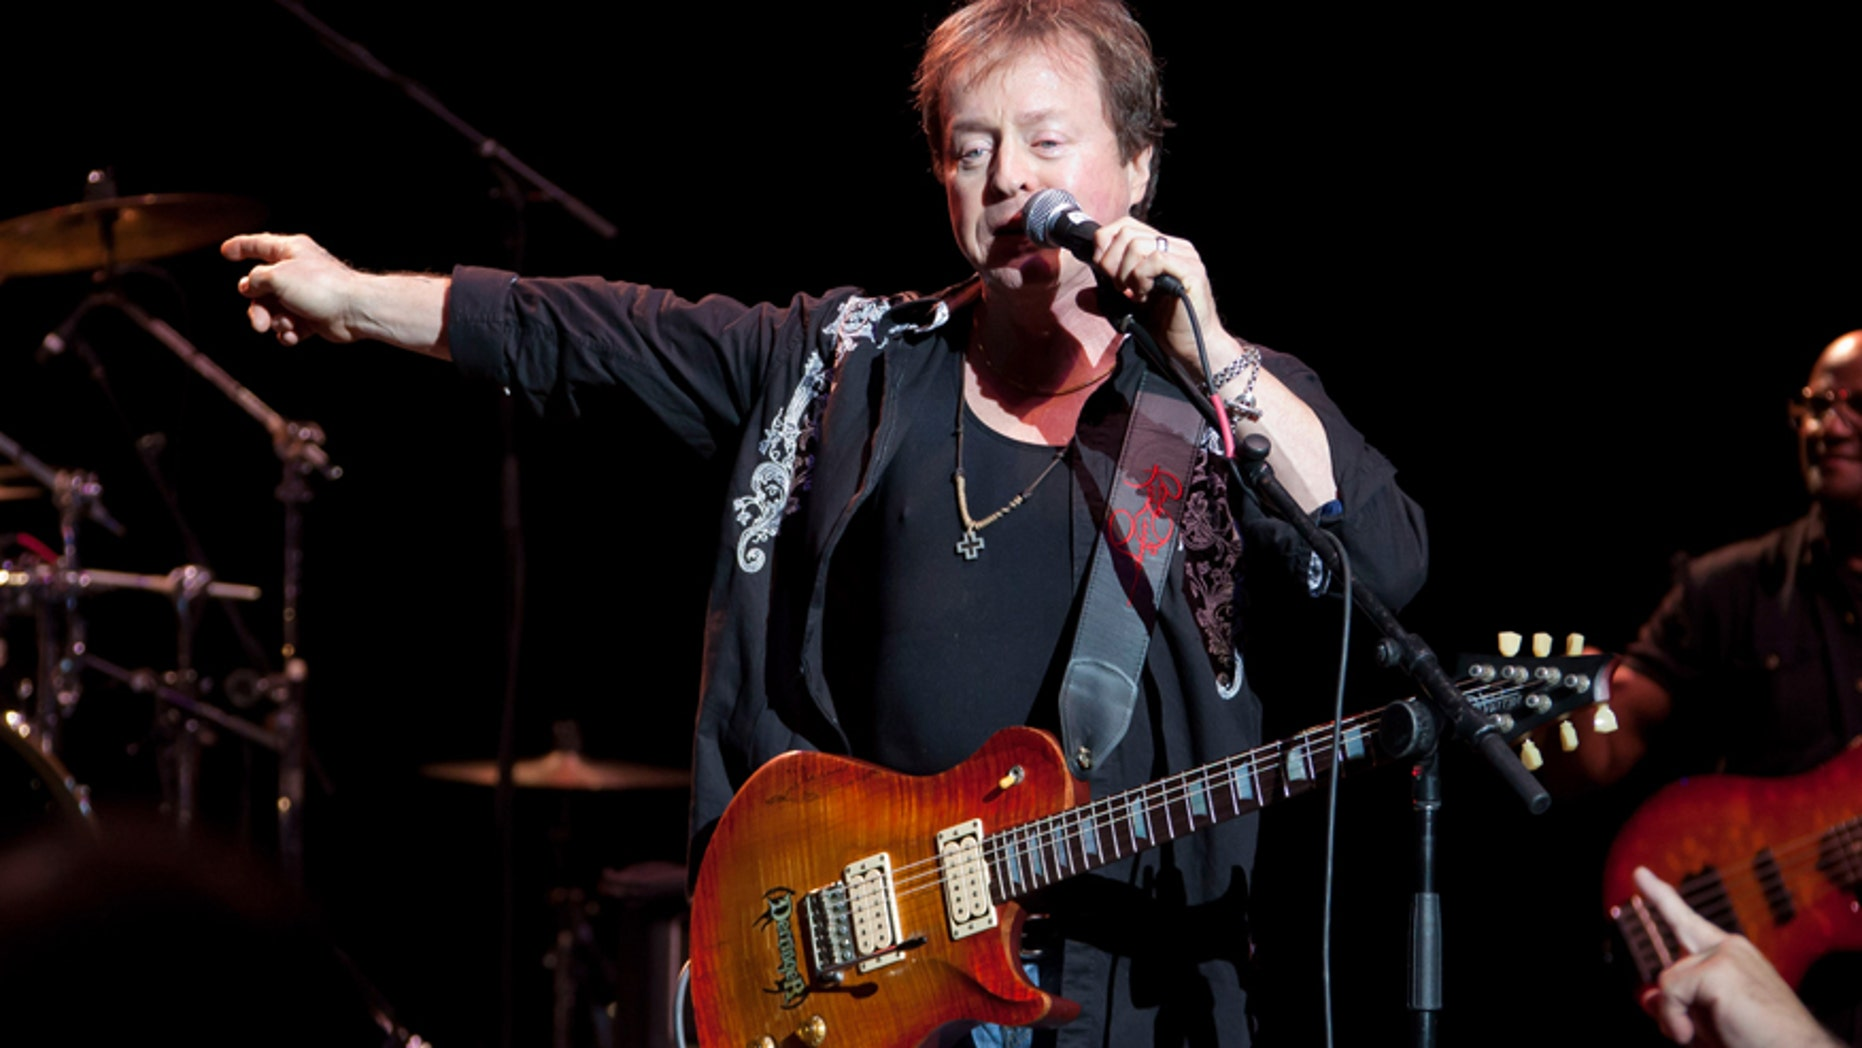 CLARKSTON, MI - AUGUST 30:  Rick Derringer peforms at DTE Energy Center on August 30, 2012 in Clarkston, Michigan.  (Photo by Scott Legato/Getty Images)